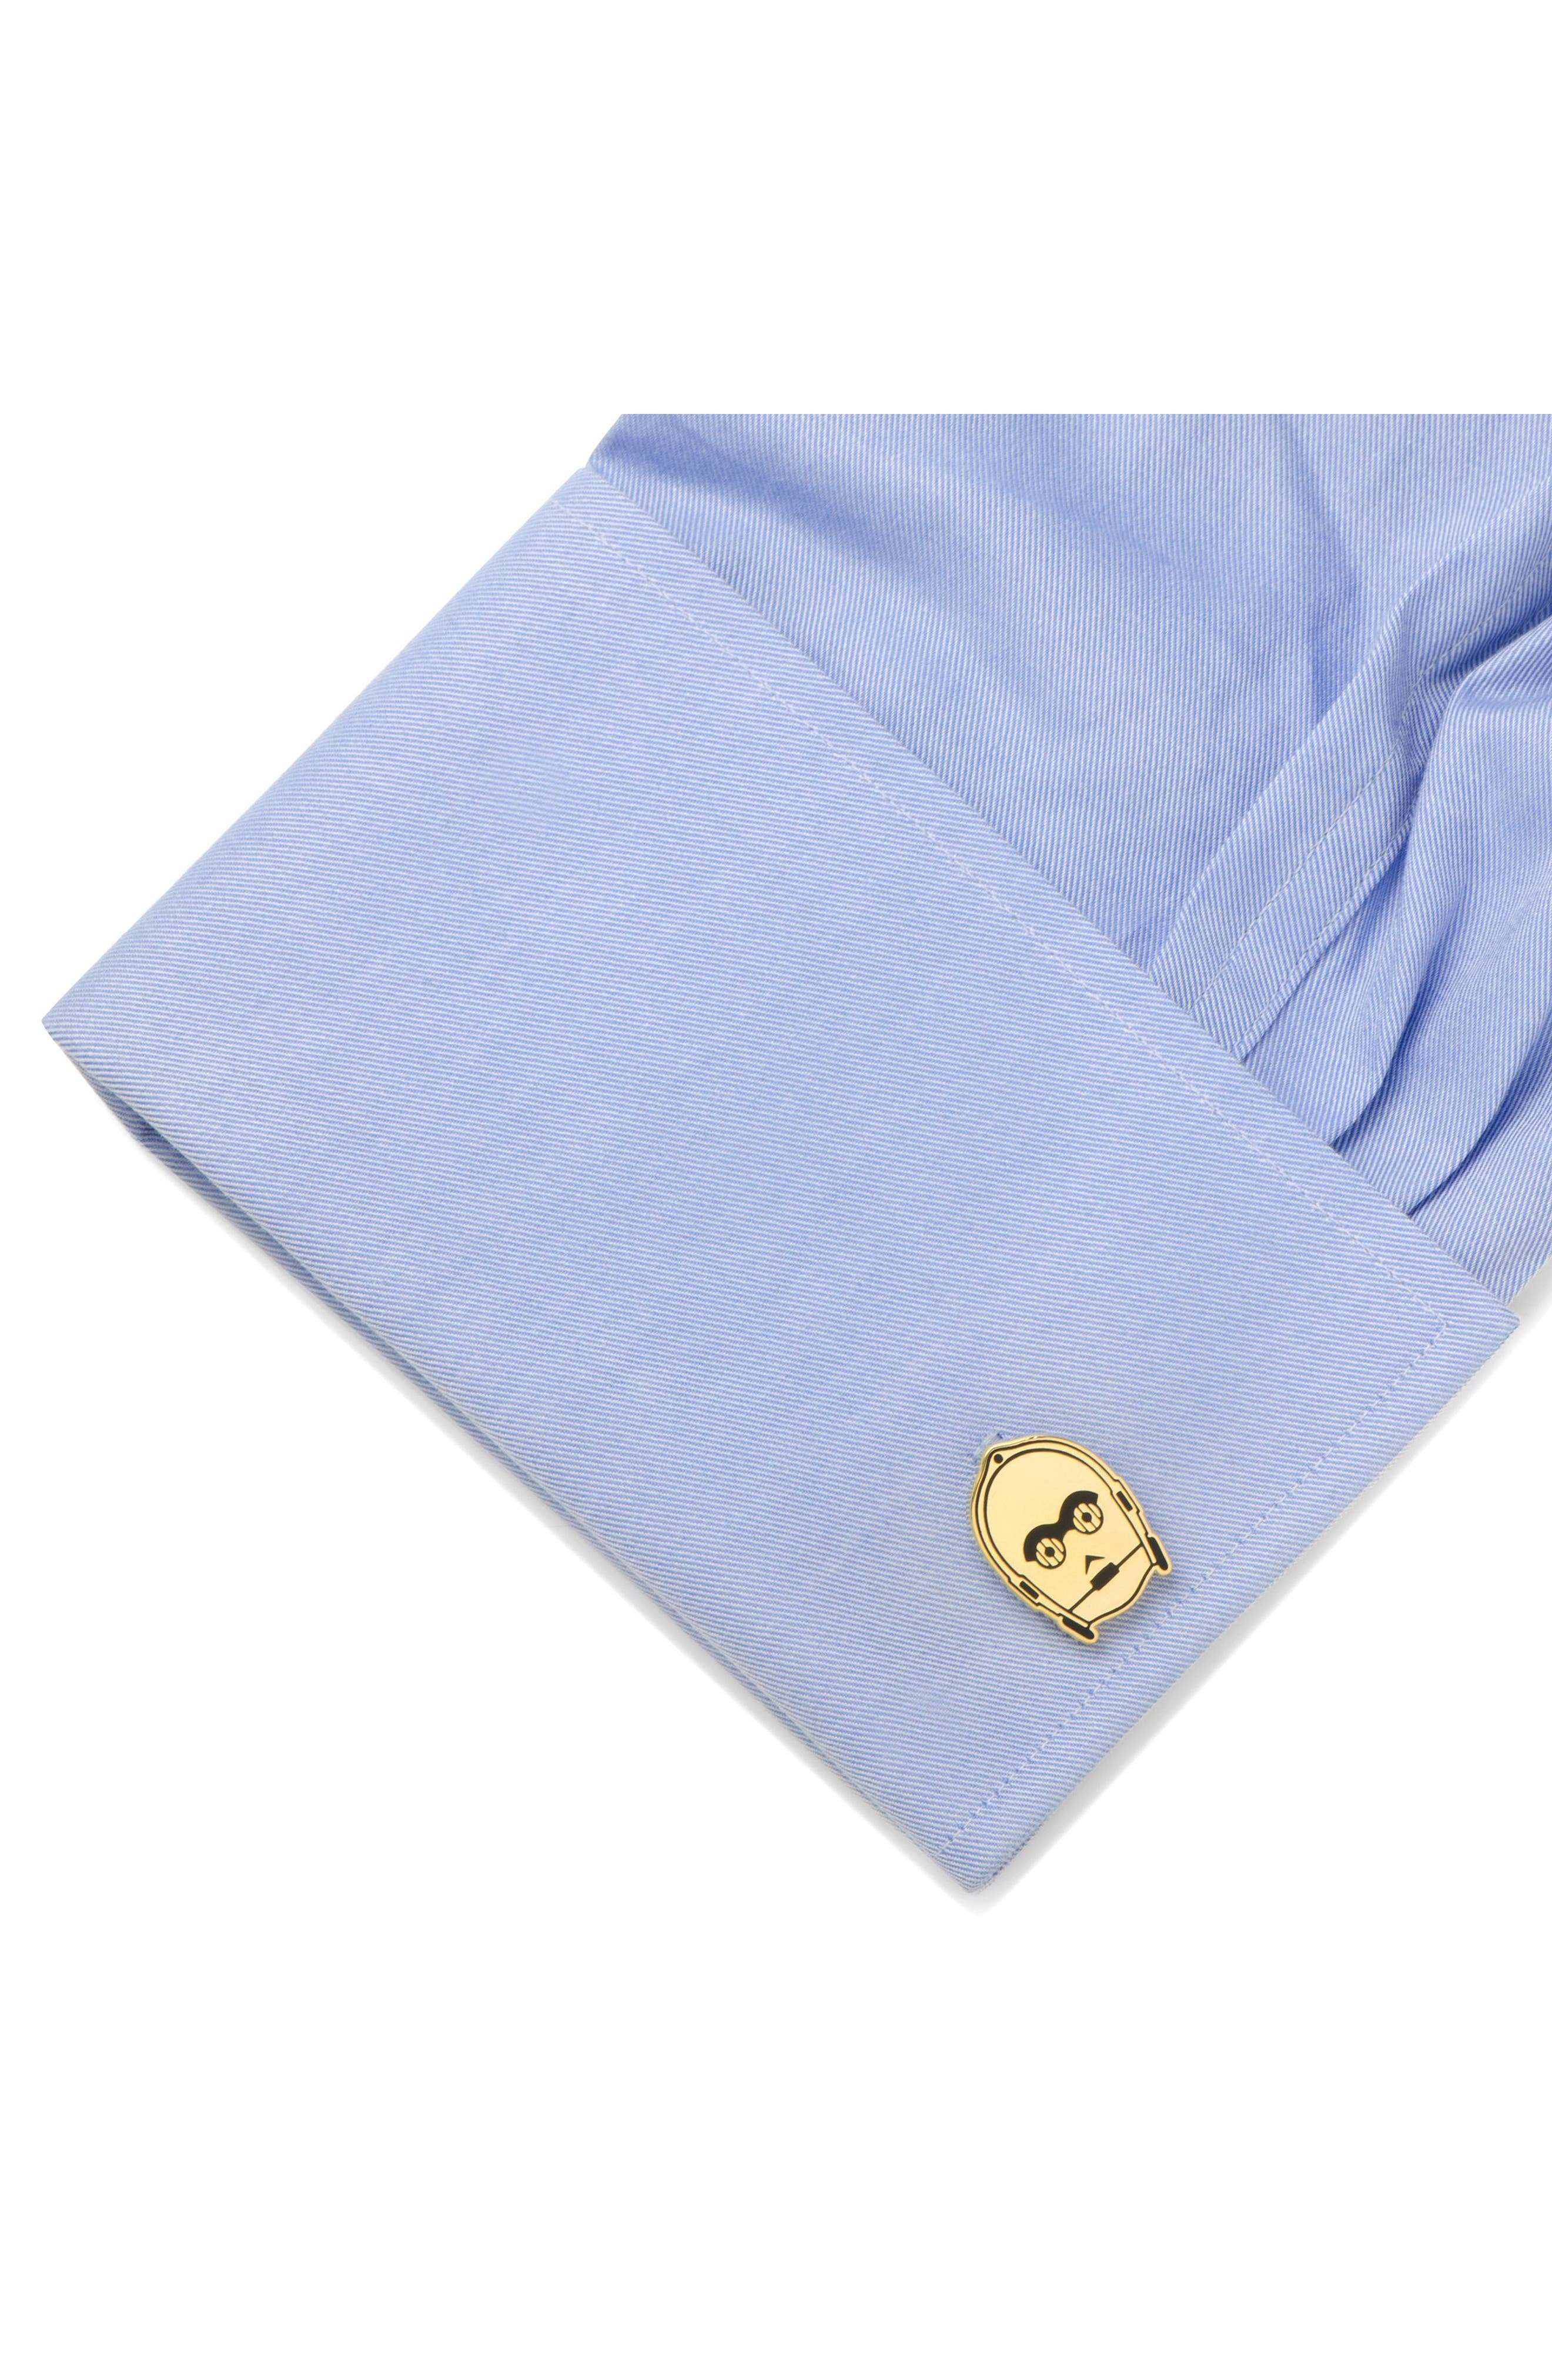 C-3PO Cuff Links,                             Alternate thumbnail 3, color,                             Gold